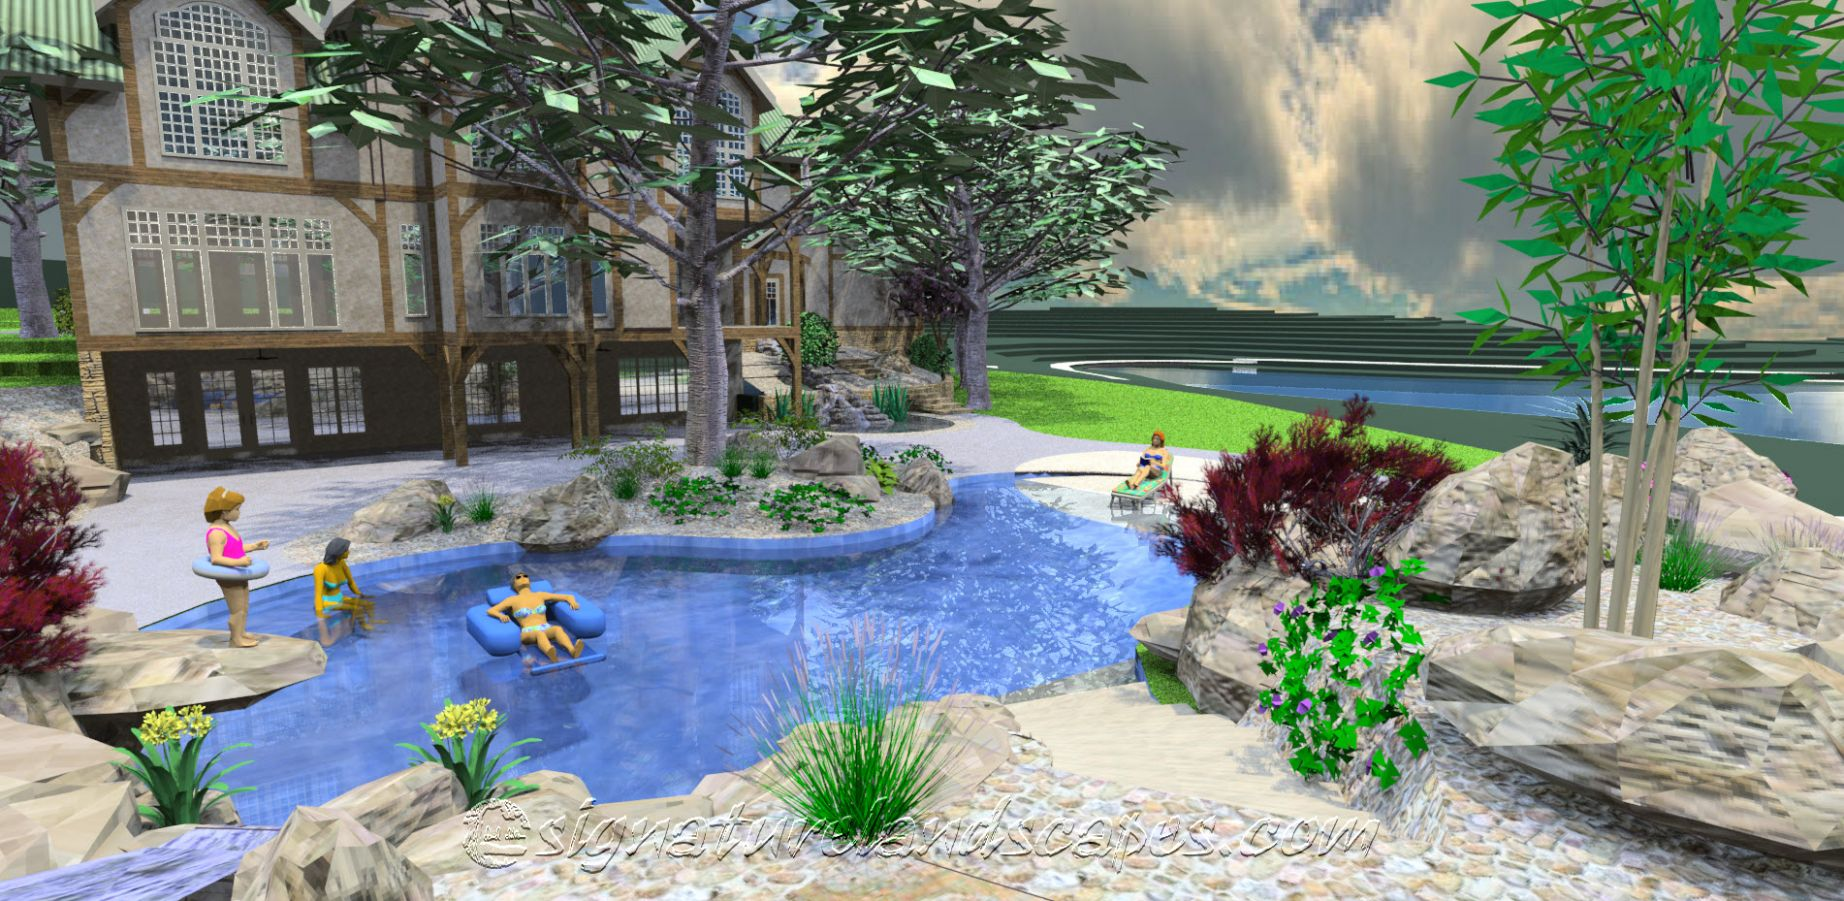 Pool Landscaping Ideas New Jersey | Lanscaping Design Home - pool landscaping ideas new jersey